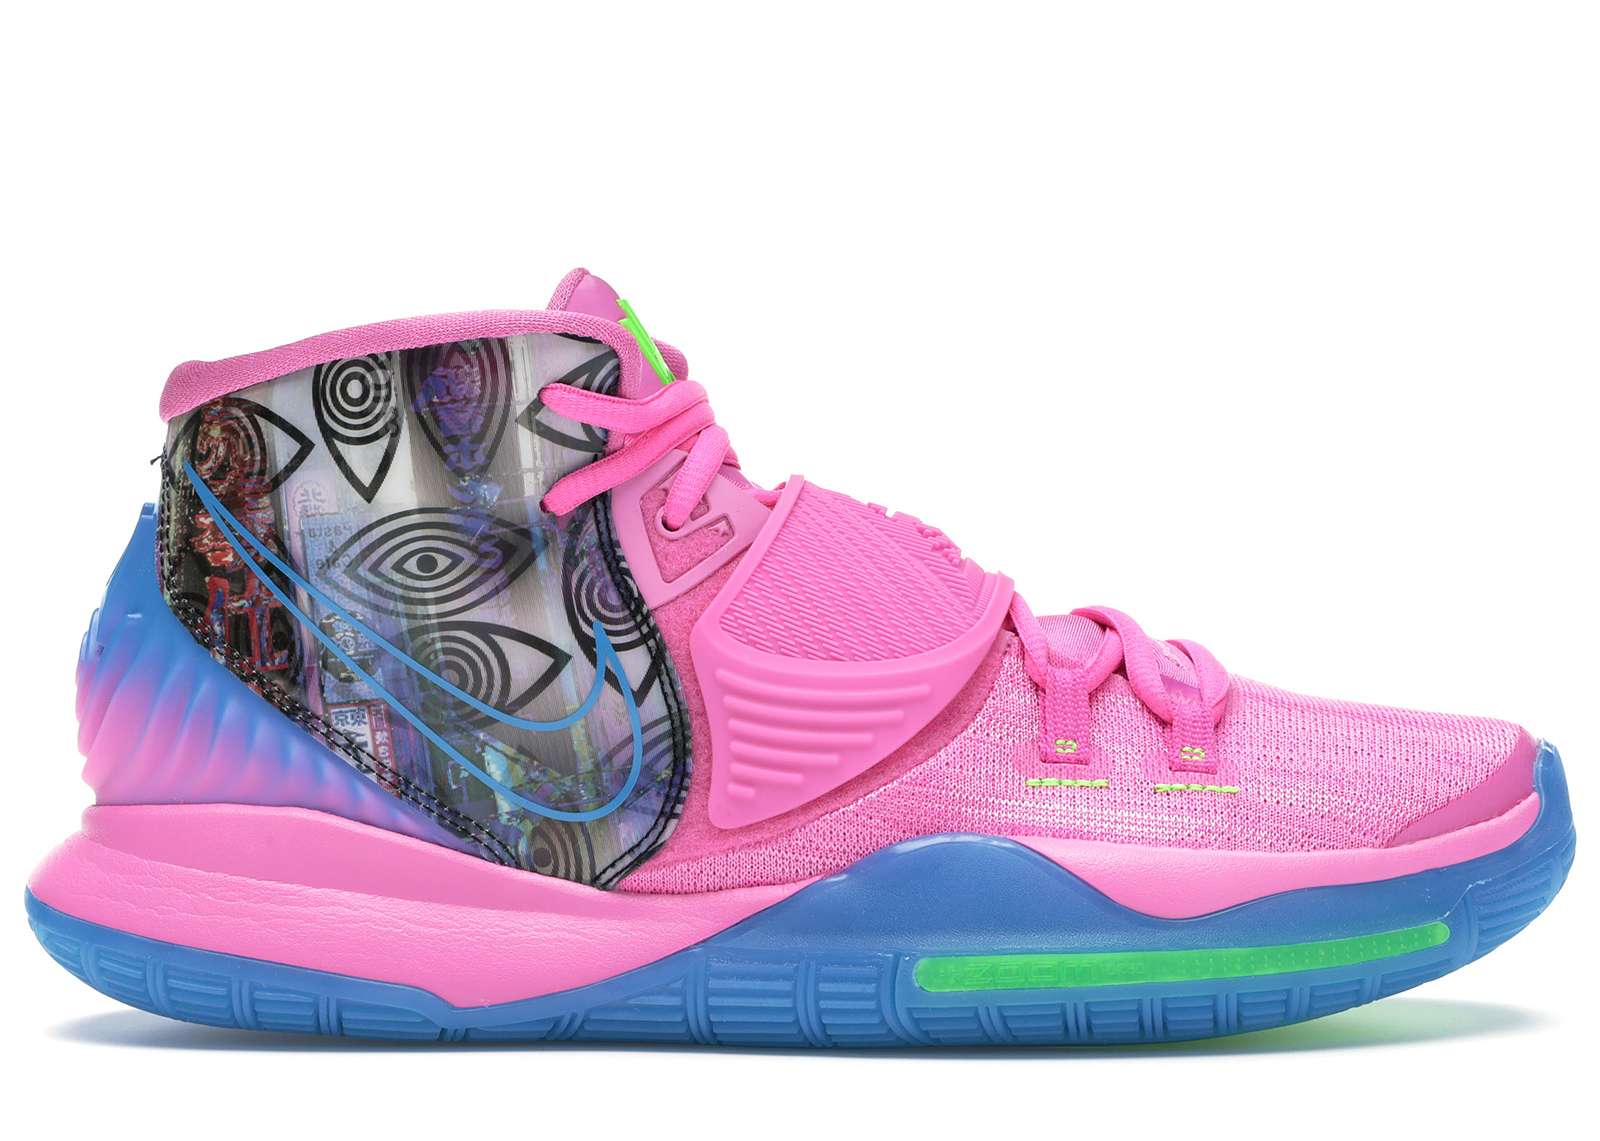 Nike Kyrie 6 Preheat Collection Tokyo